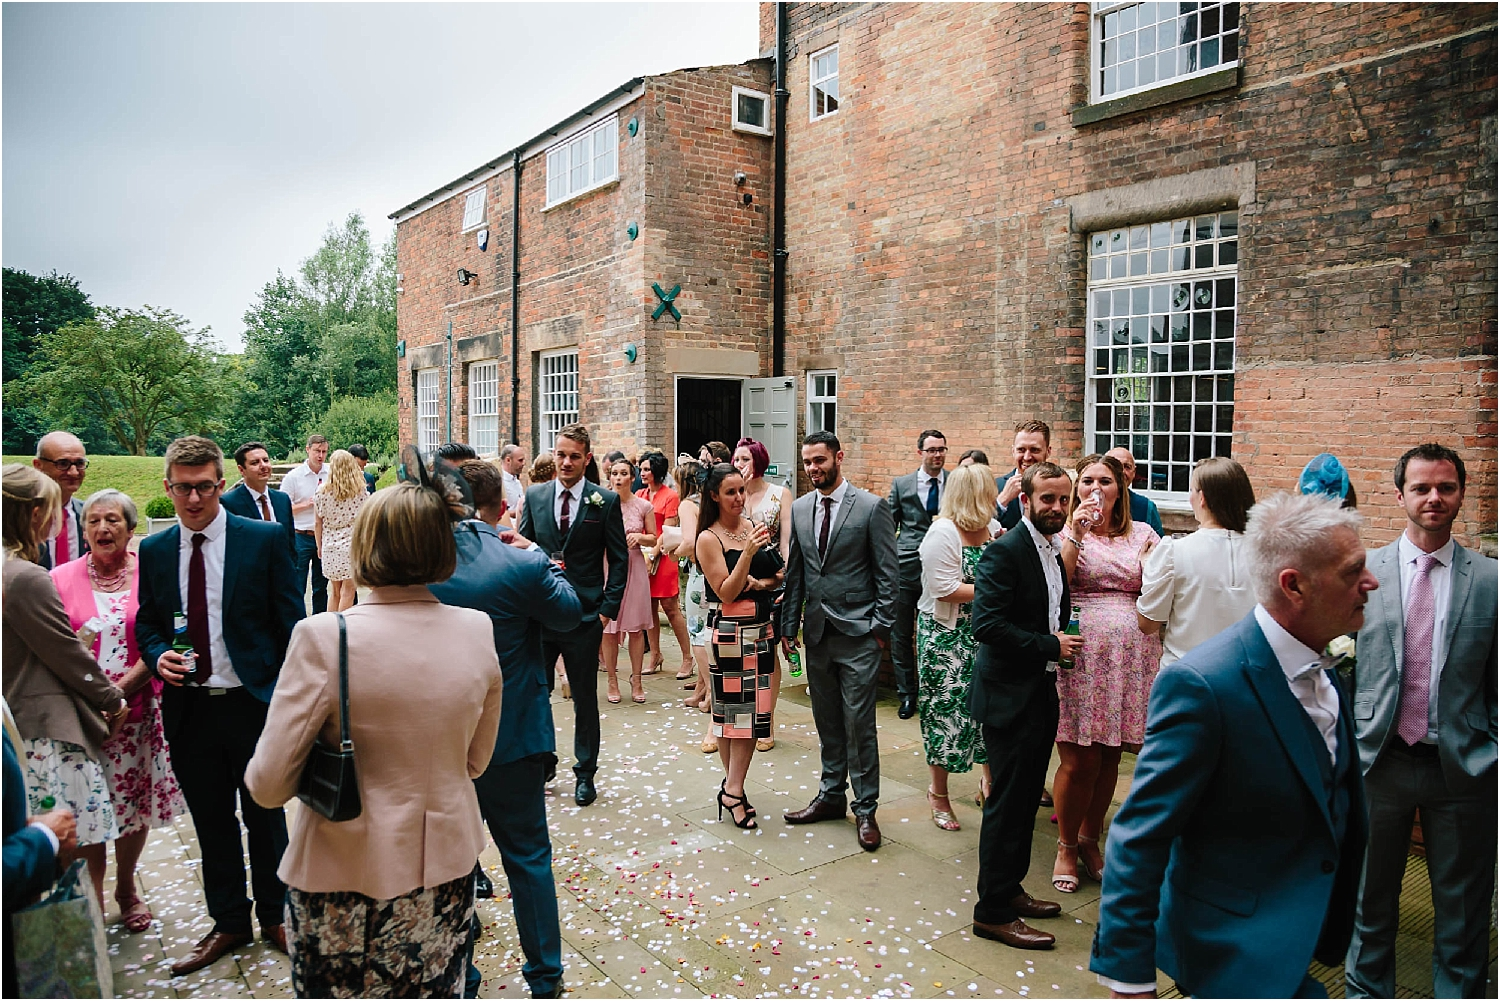 Wedding-west-mill-venue-professional-photographer-natural-documentary-nottingham-derby-281_BLOG.jpg